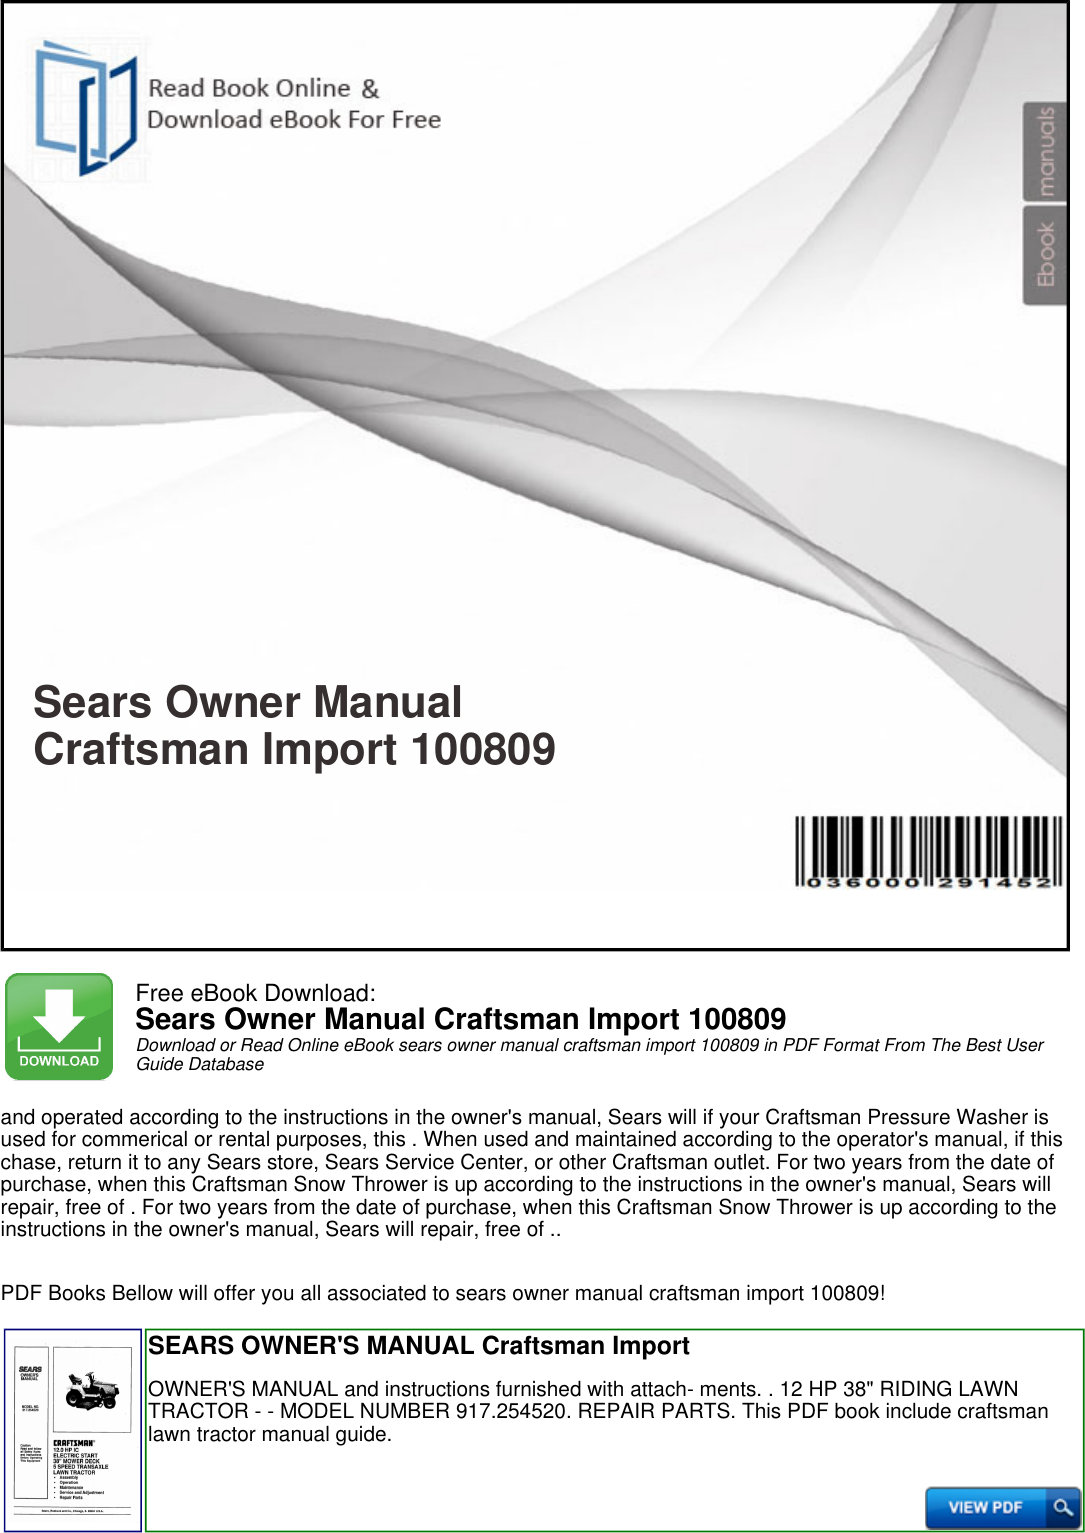 Craftsman manual ebook array sears owner manual craftsman import 100809 productmanualguide com rh usermanual fandeluxe Gallery